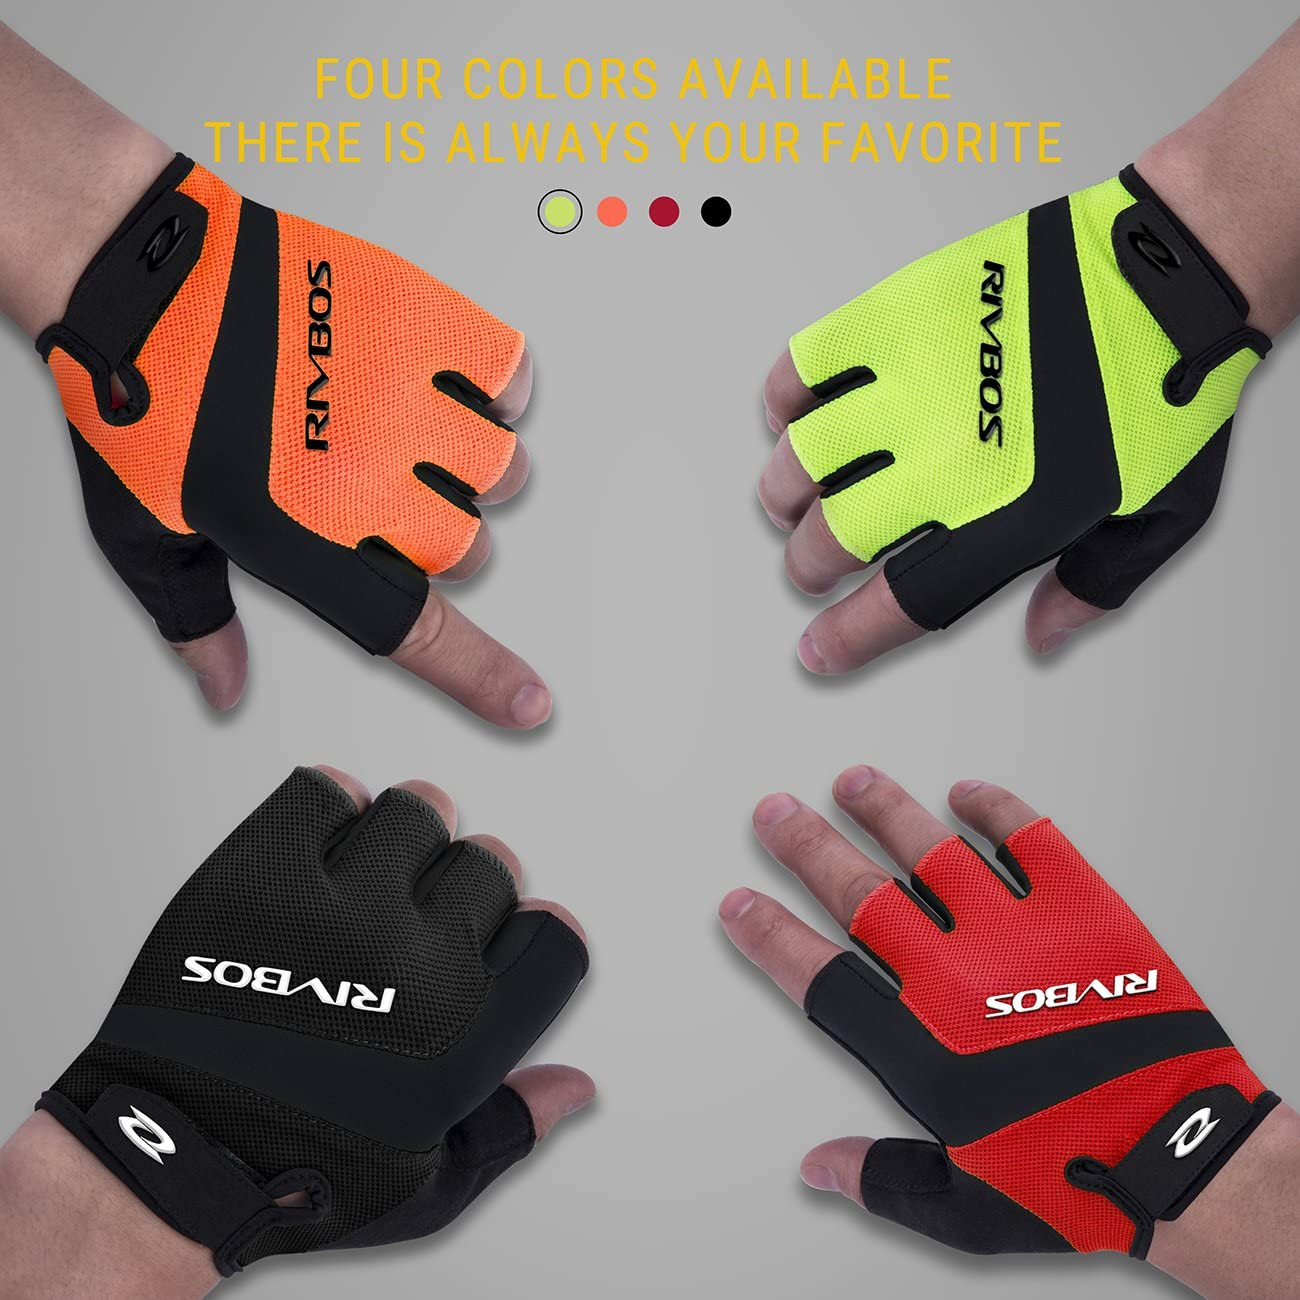 RIVBOS Bike Gloves Cycling Gloves Fingerless for Men Women with Foam Padding Breathable Mesh Fashion Design for Motorcycle Bicycle Mountain Riding Driving Sports Outdoors Exercise CHG004 Yellow XL